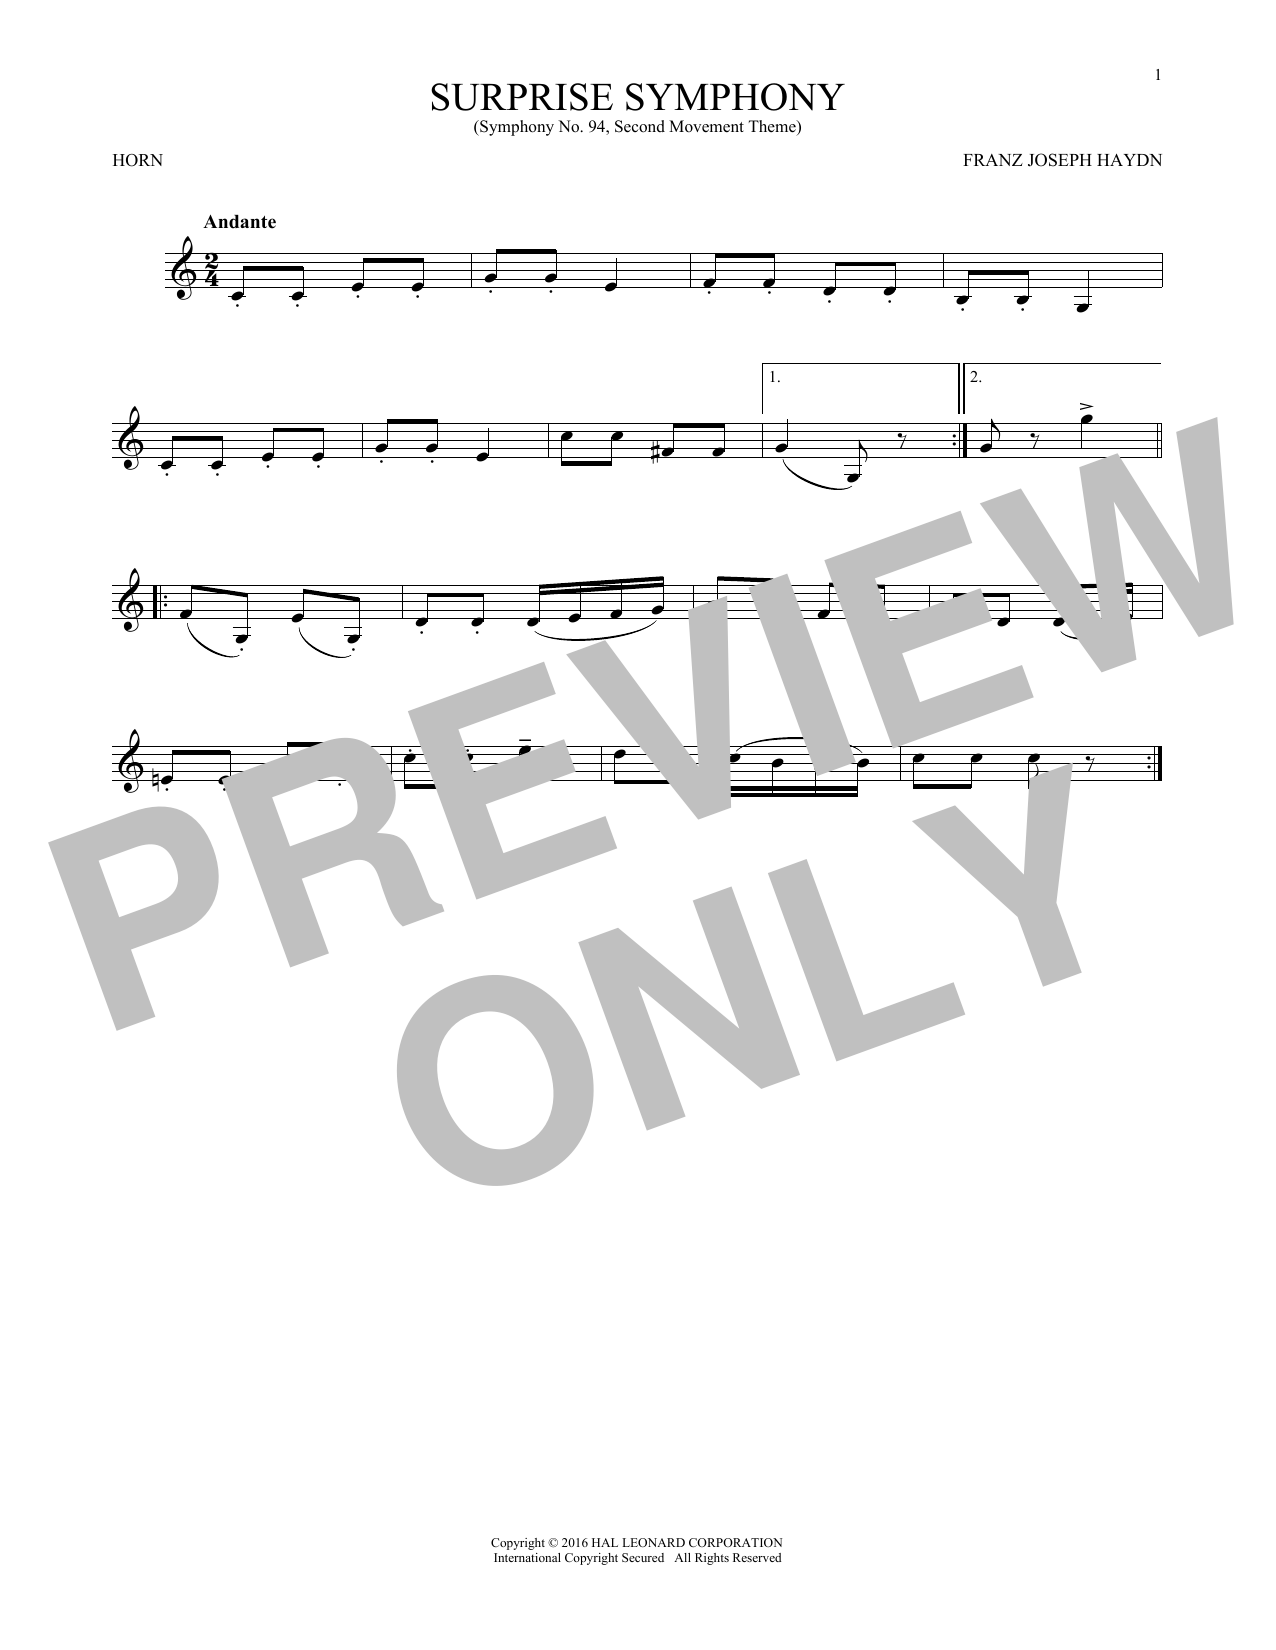 The Surprise Symphony (French Horn Solo)